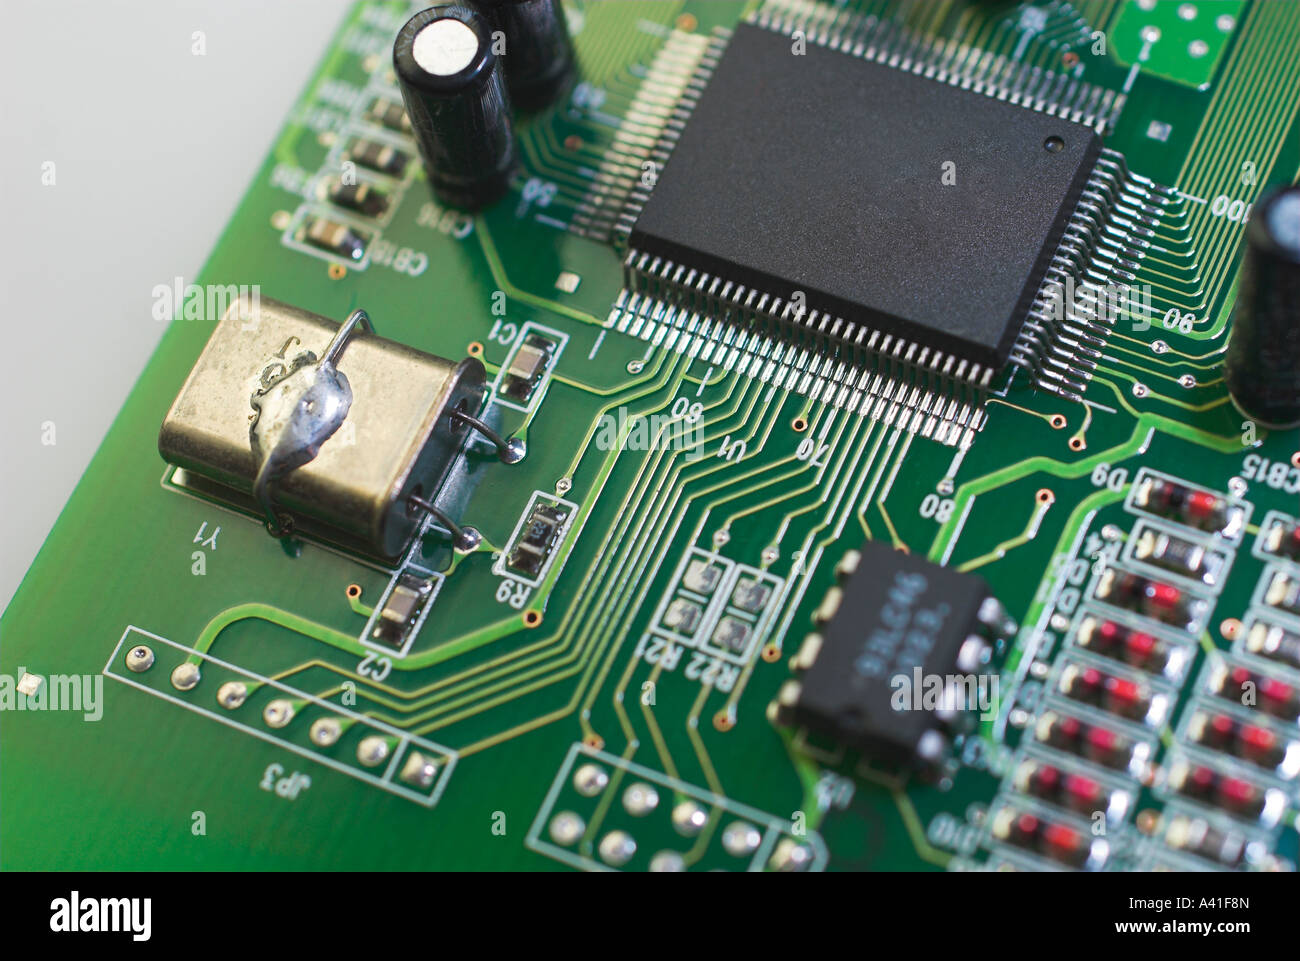 Inside a circuit board - Stock Image